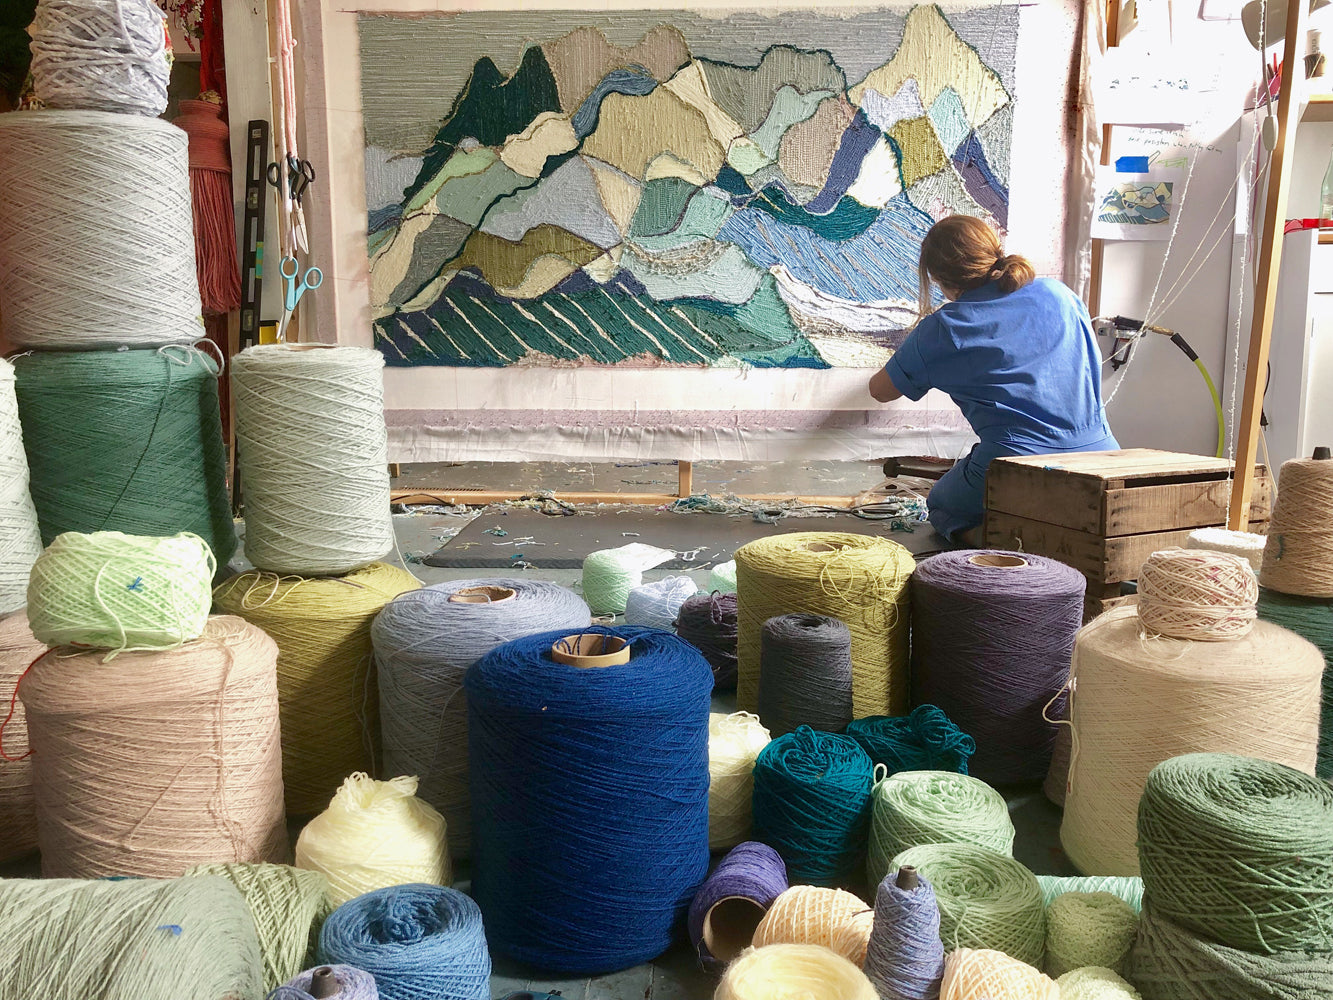 Fiber artist Trish Andersen working on large scale tufting